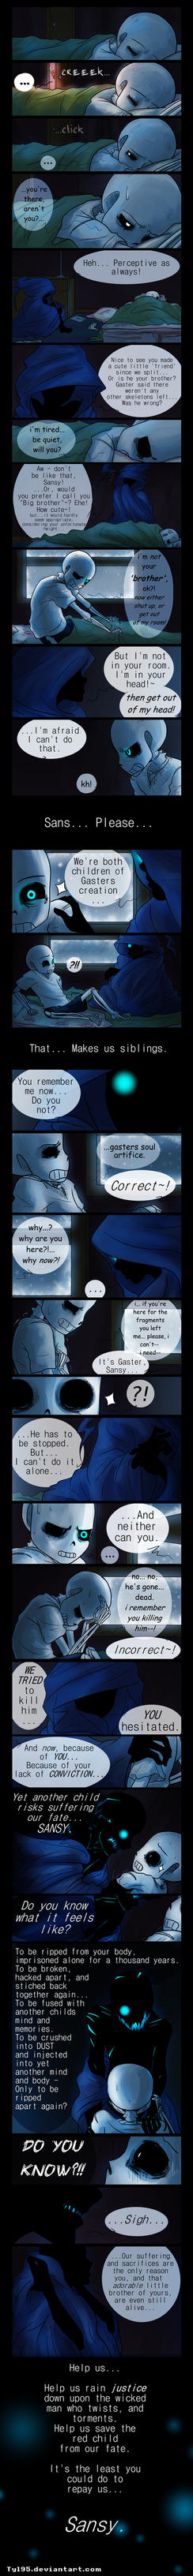 Speaking with Shadows (Undertale Comic) by Tyl95